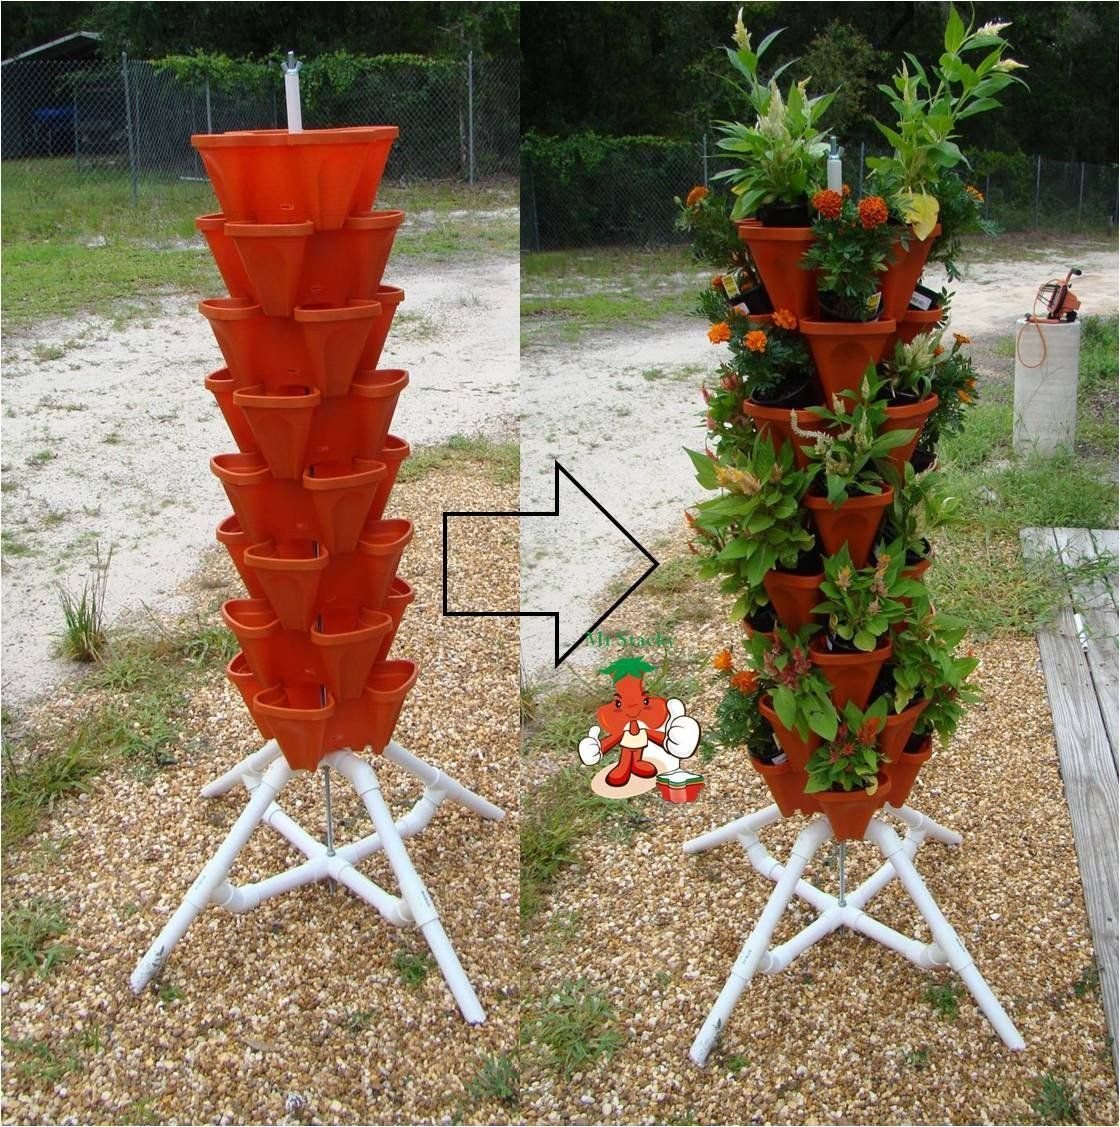 amazon : vertical gardening tiered tower - indoor outdoor